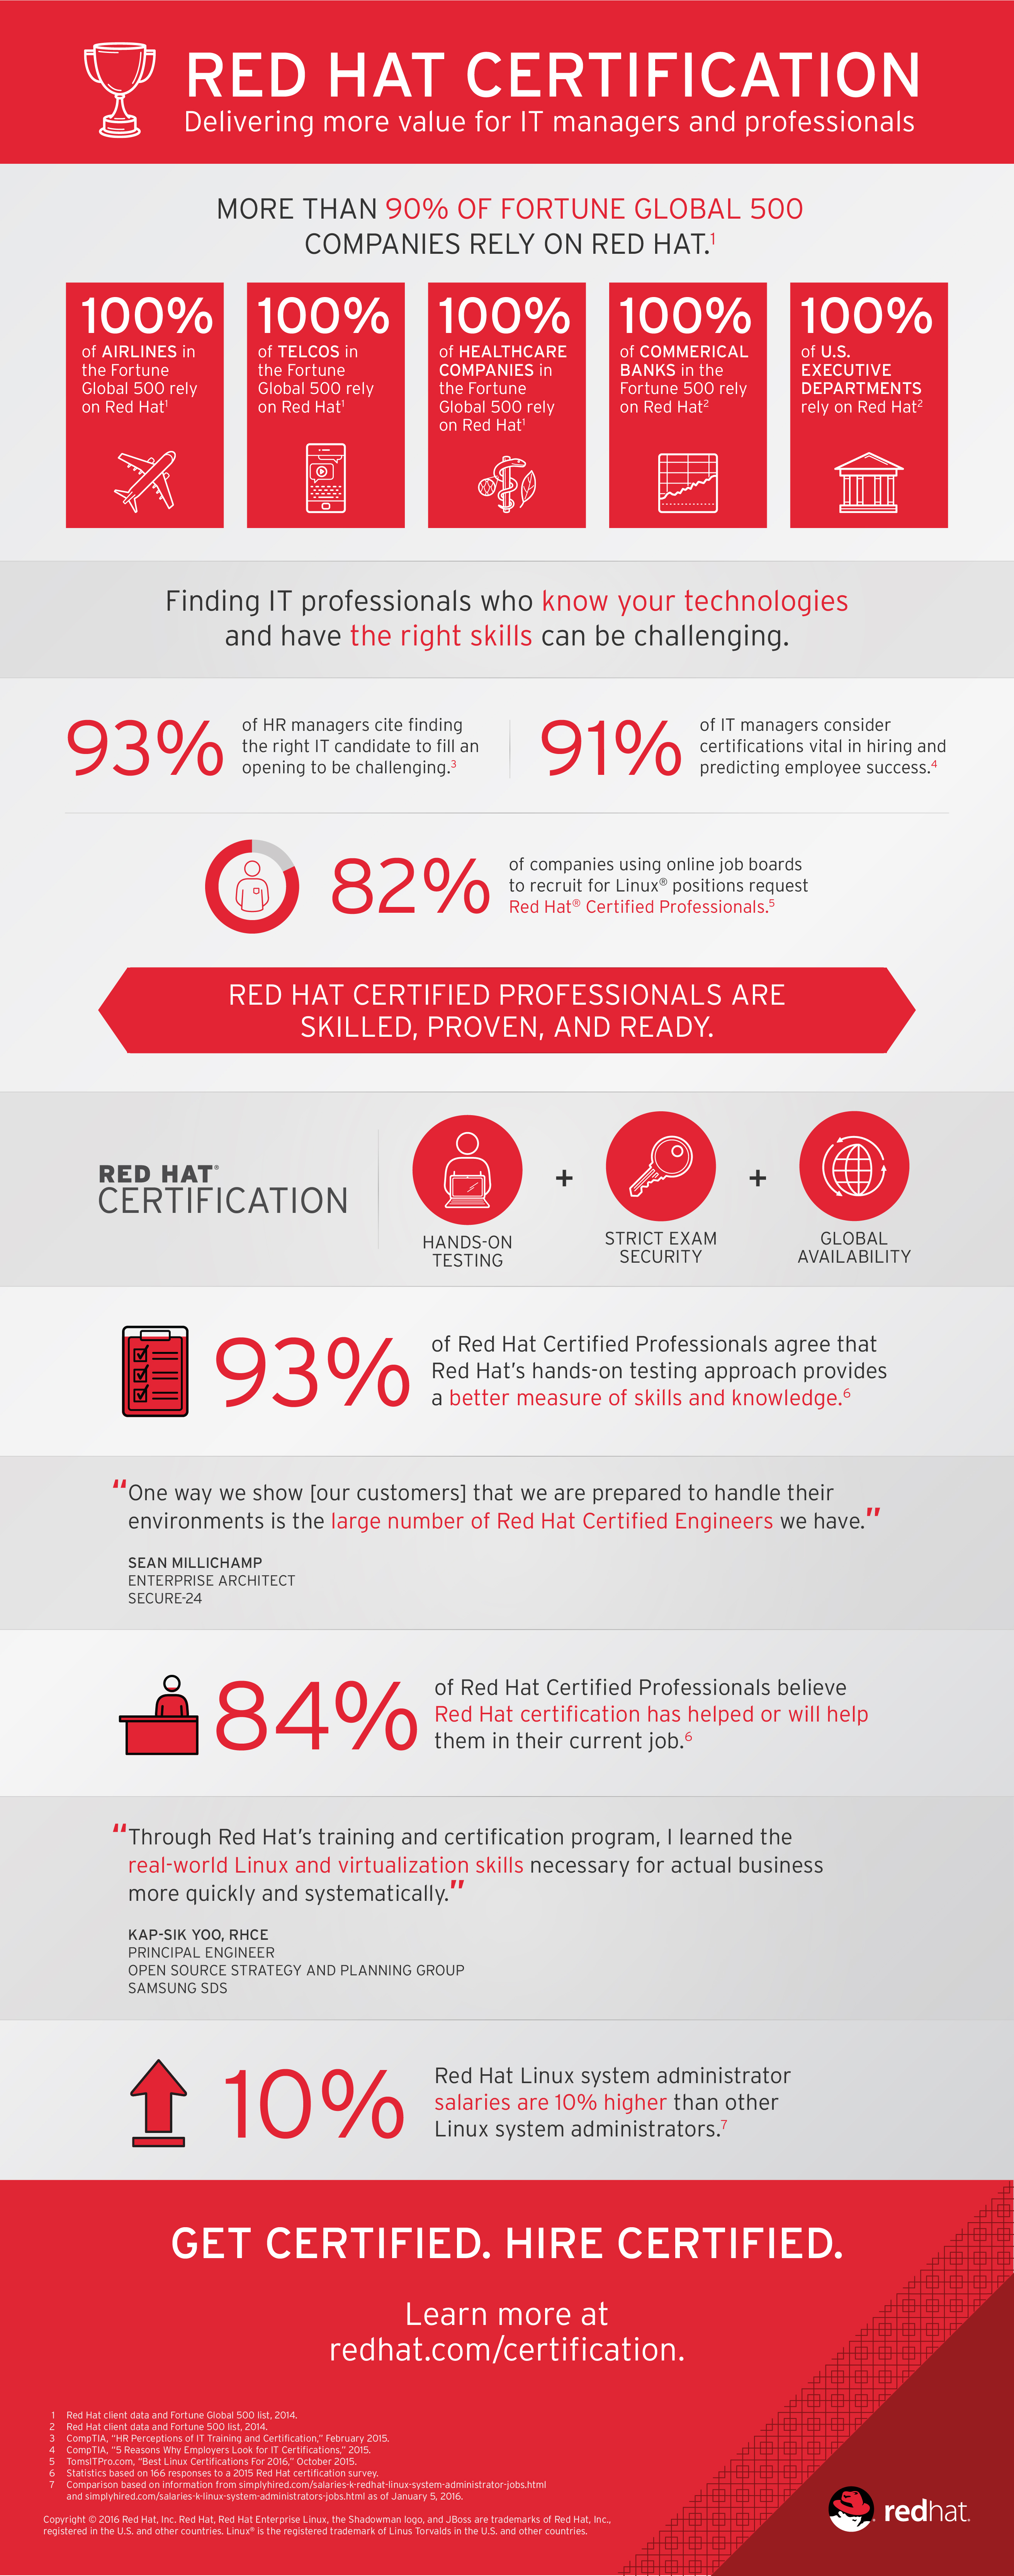 Red Hat Certified Professionals Weigh In On Value Of Certification